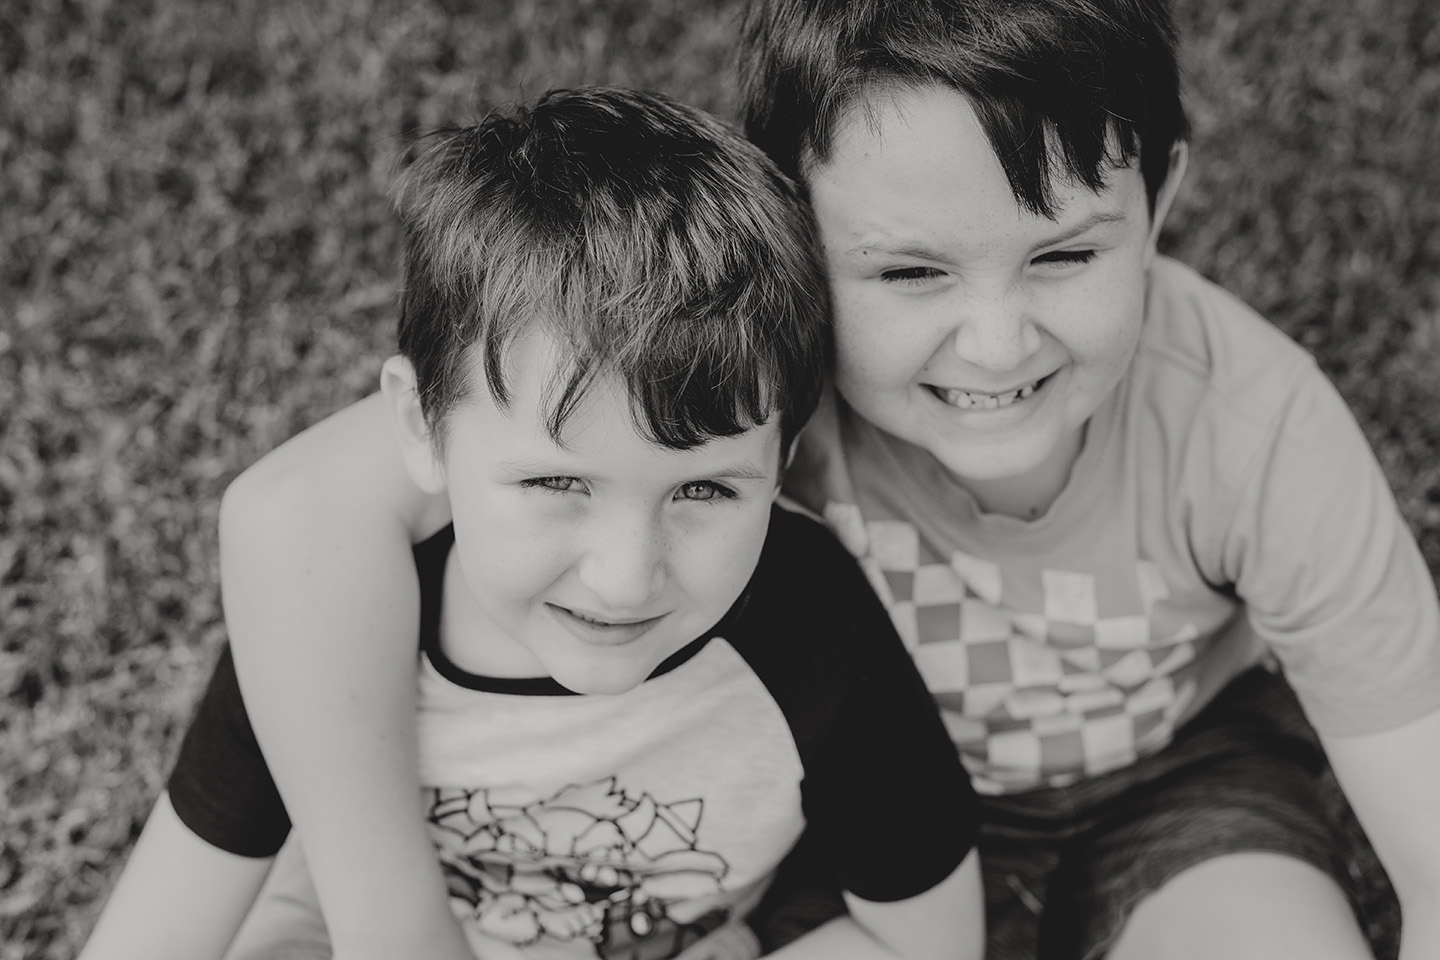 brothers, b&w, children, family photography, Alice Payne photography, mid north coast nsw